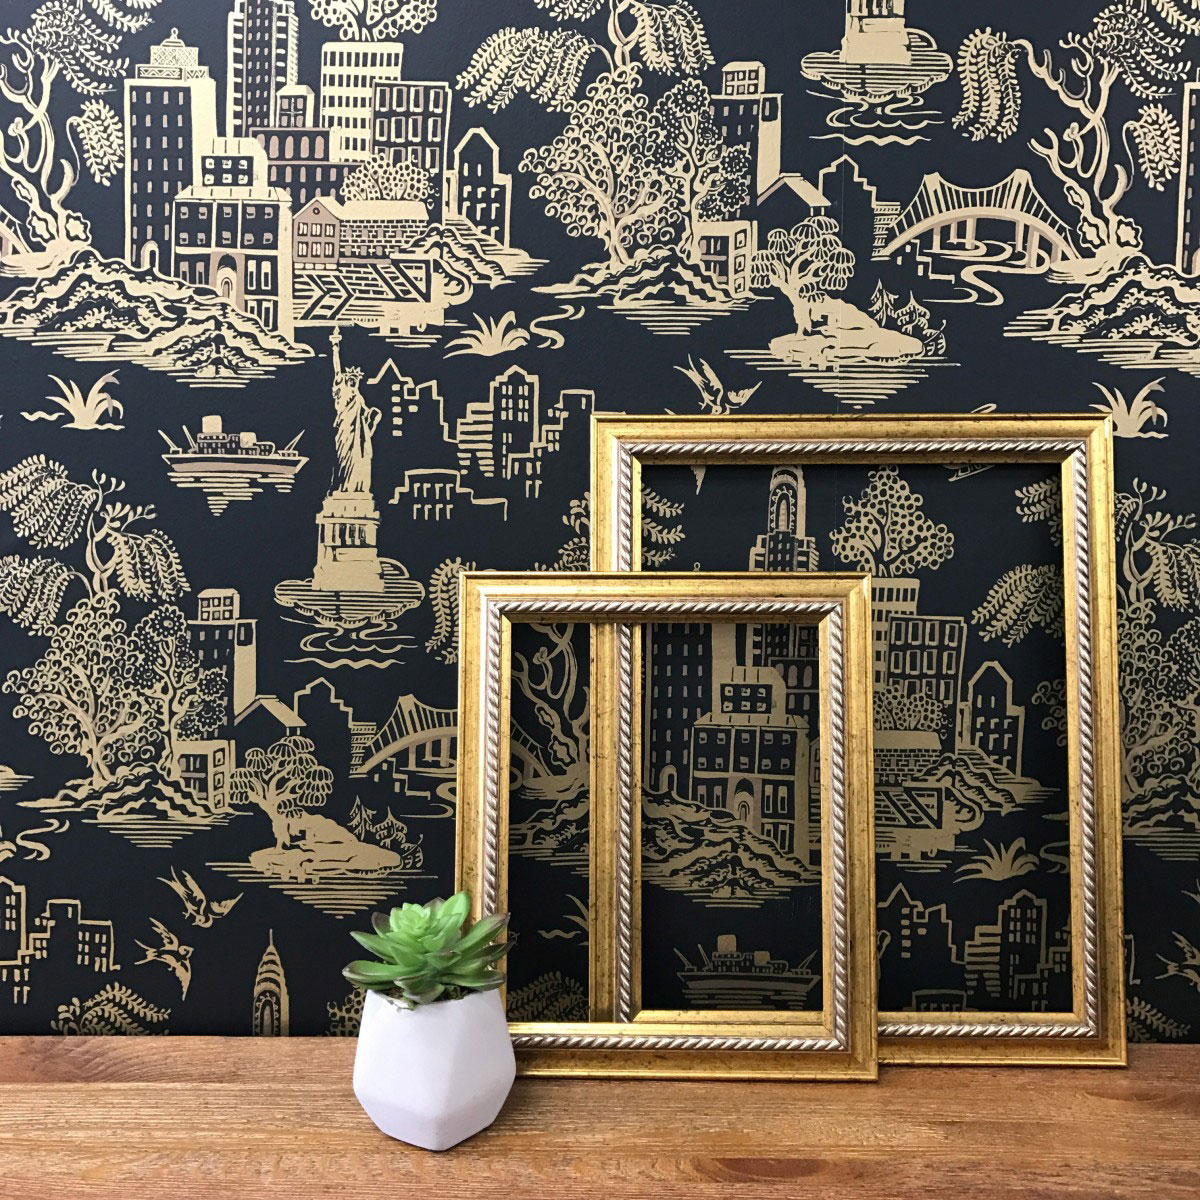 Wallpaper for Walls Tempaper New York Toile in Black & Metallic Gold